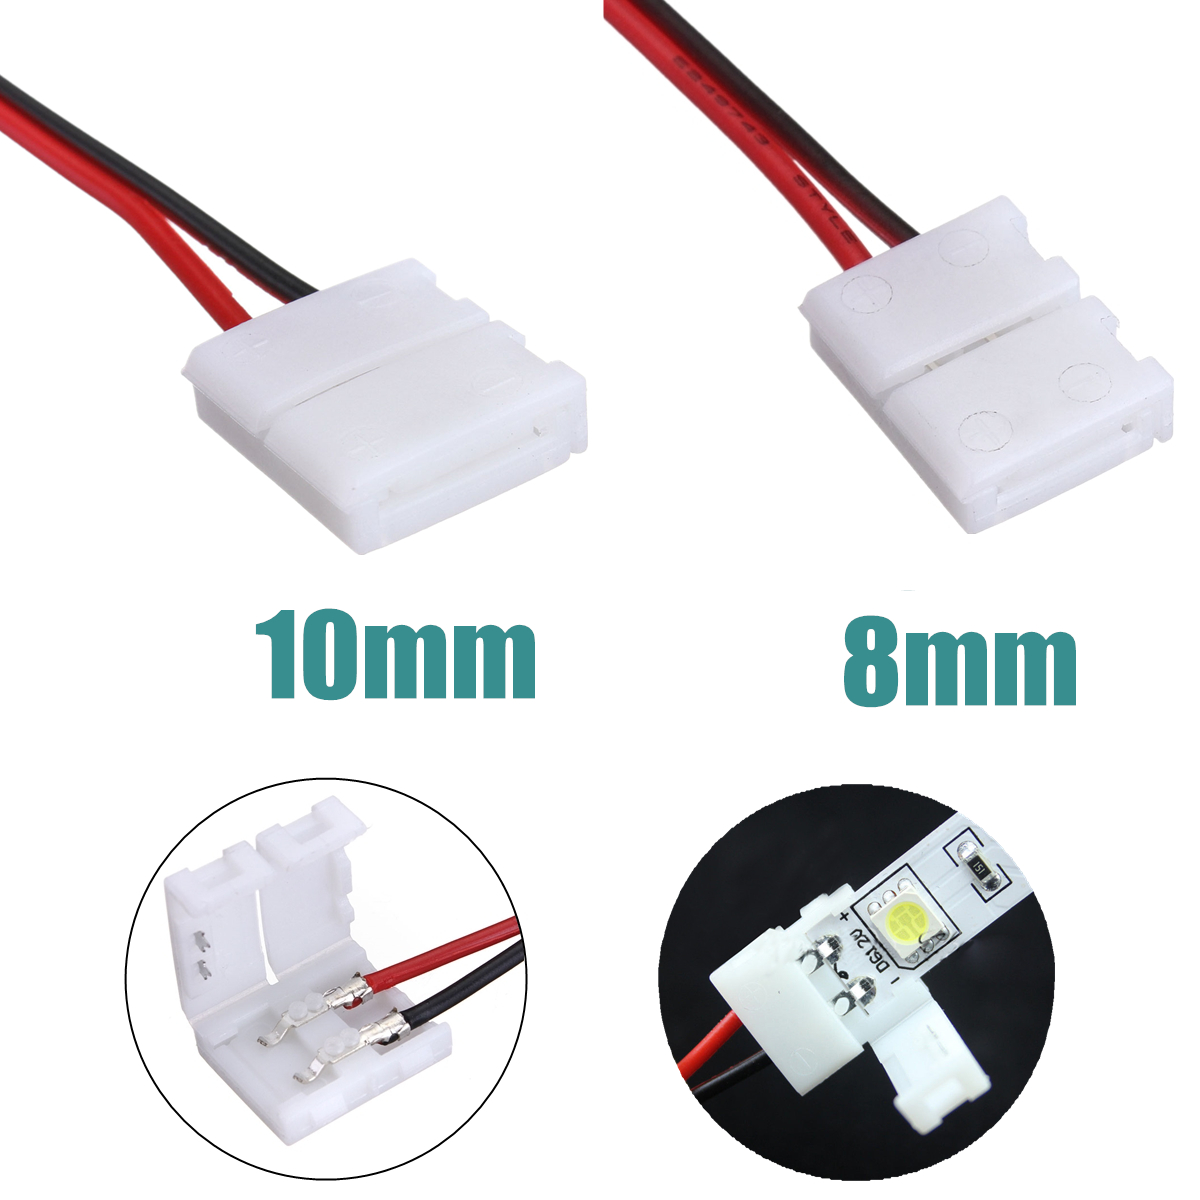 2-Pins Power Connector Adaptor For 3528/5050 Led Strip Wire With PCB 20pcs lot led connector silicon clip for fixing non waterproof 3528 5630 5730 3014 5050 smd rgb rgbw led strip bracket clamp